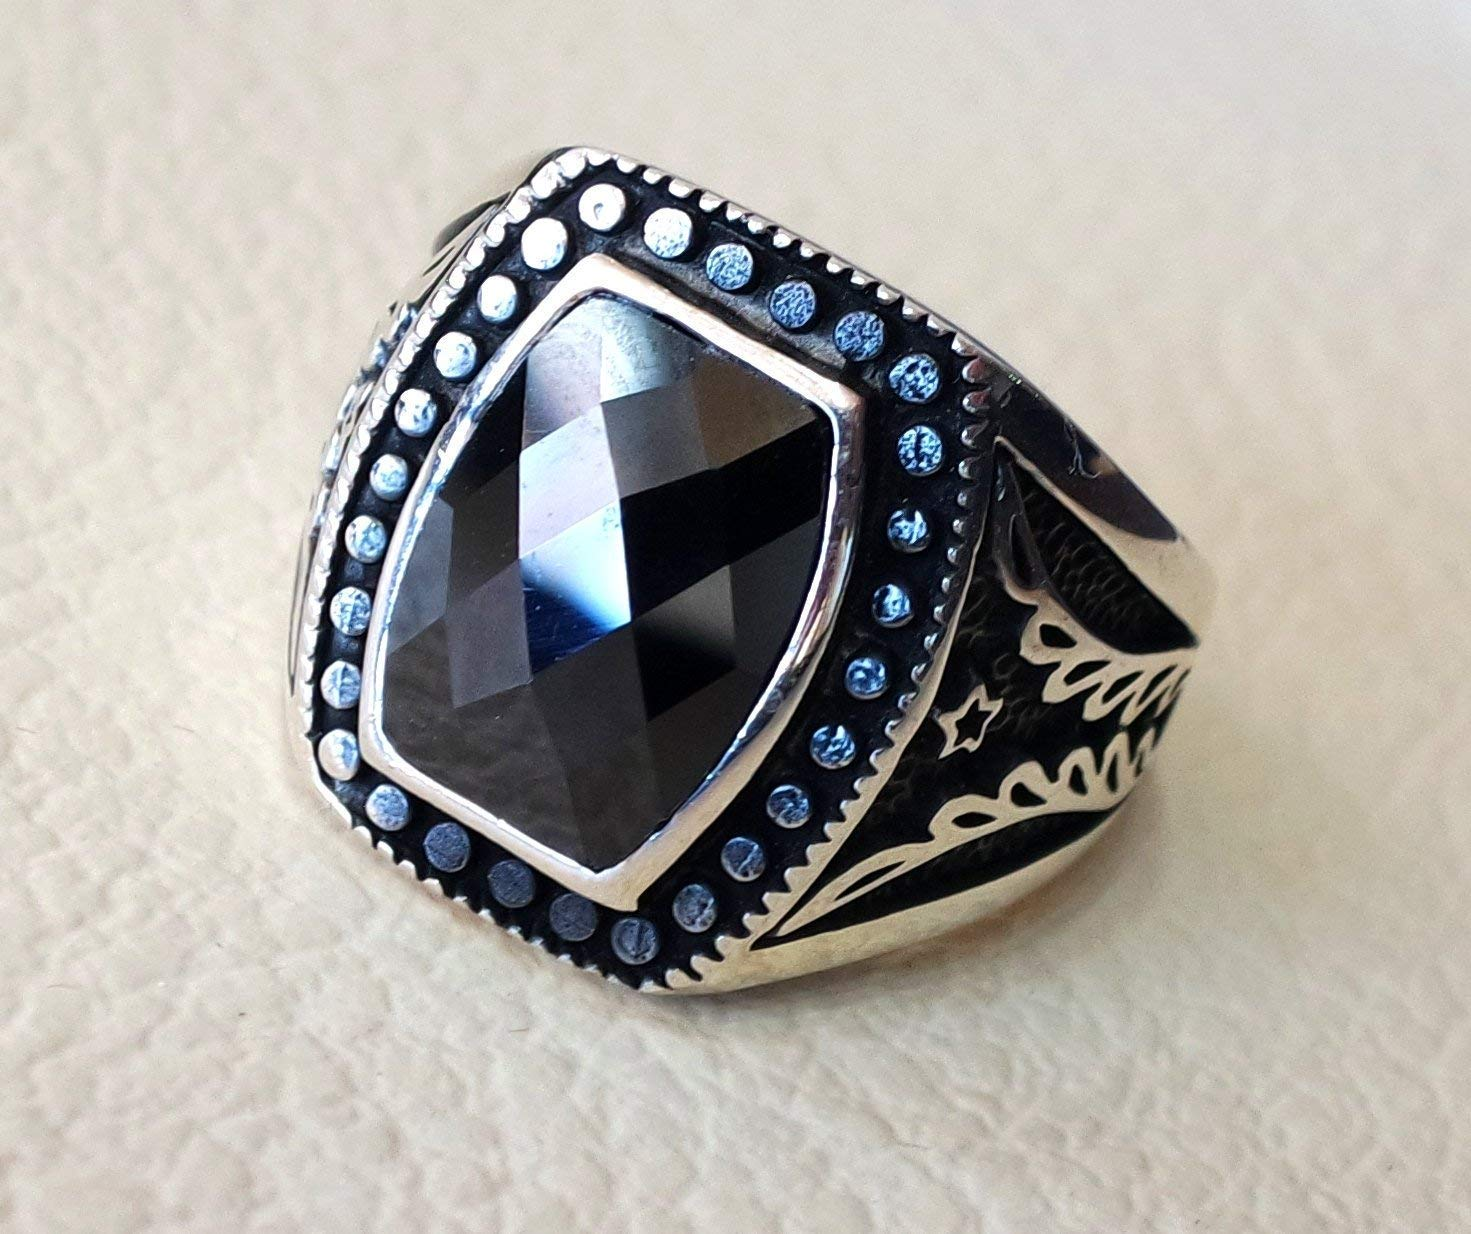 Handmade 925 Sterling Silver Men/'s Ring With Natural Onyx Stone